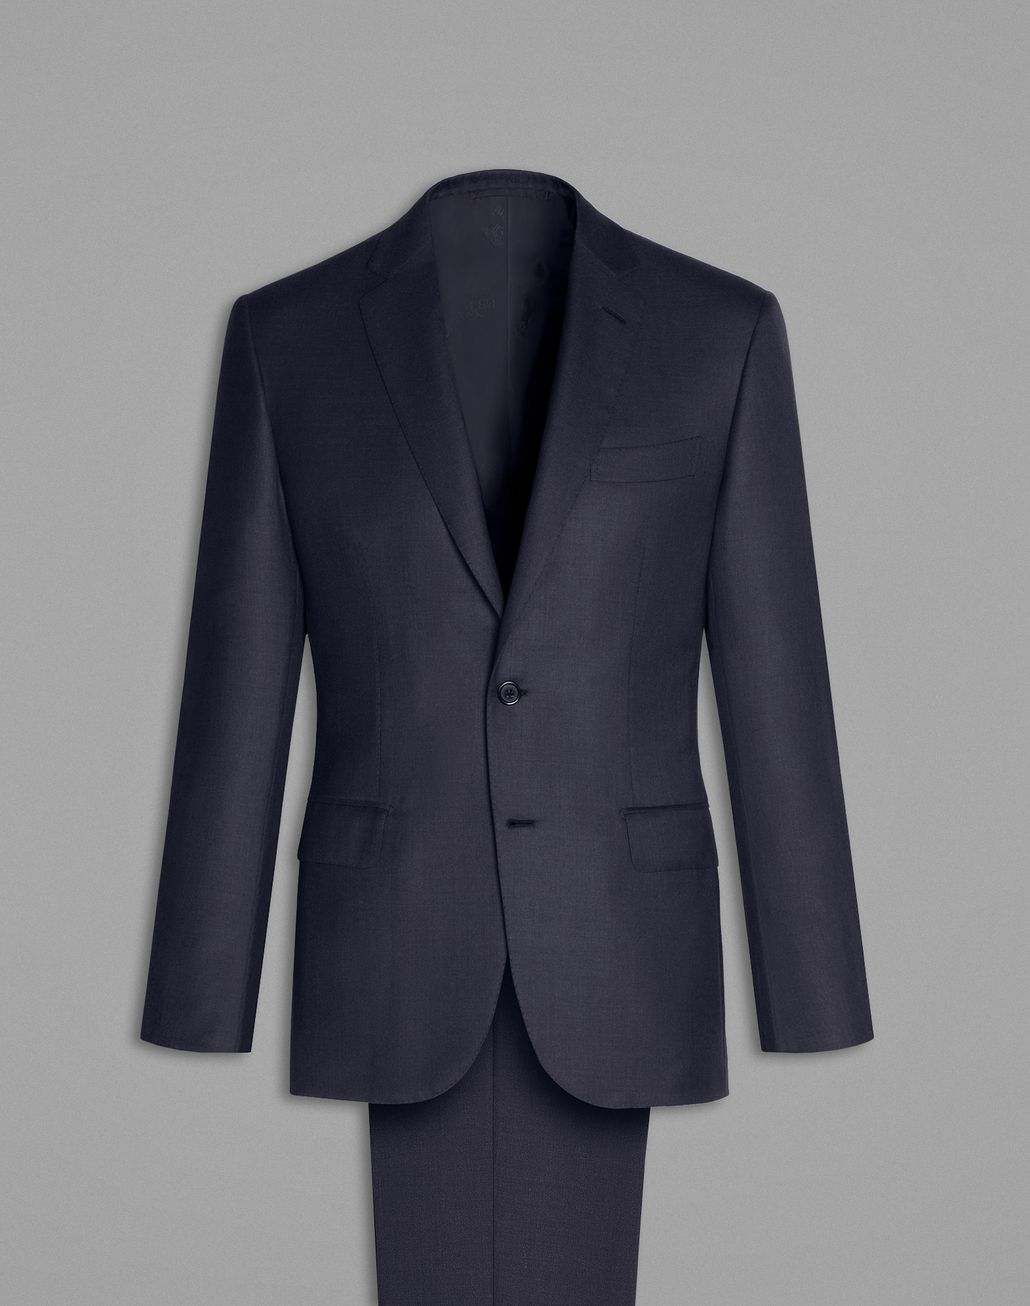 BRIONI Marineblauer Anzug Madison Suits & Jackets Herren f